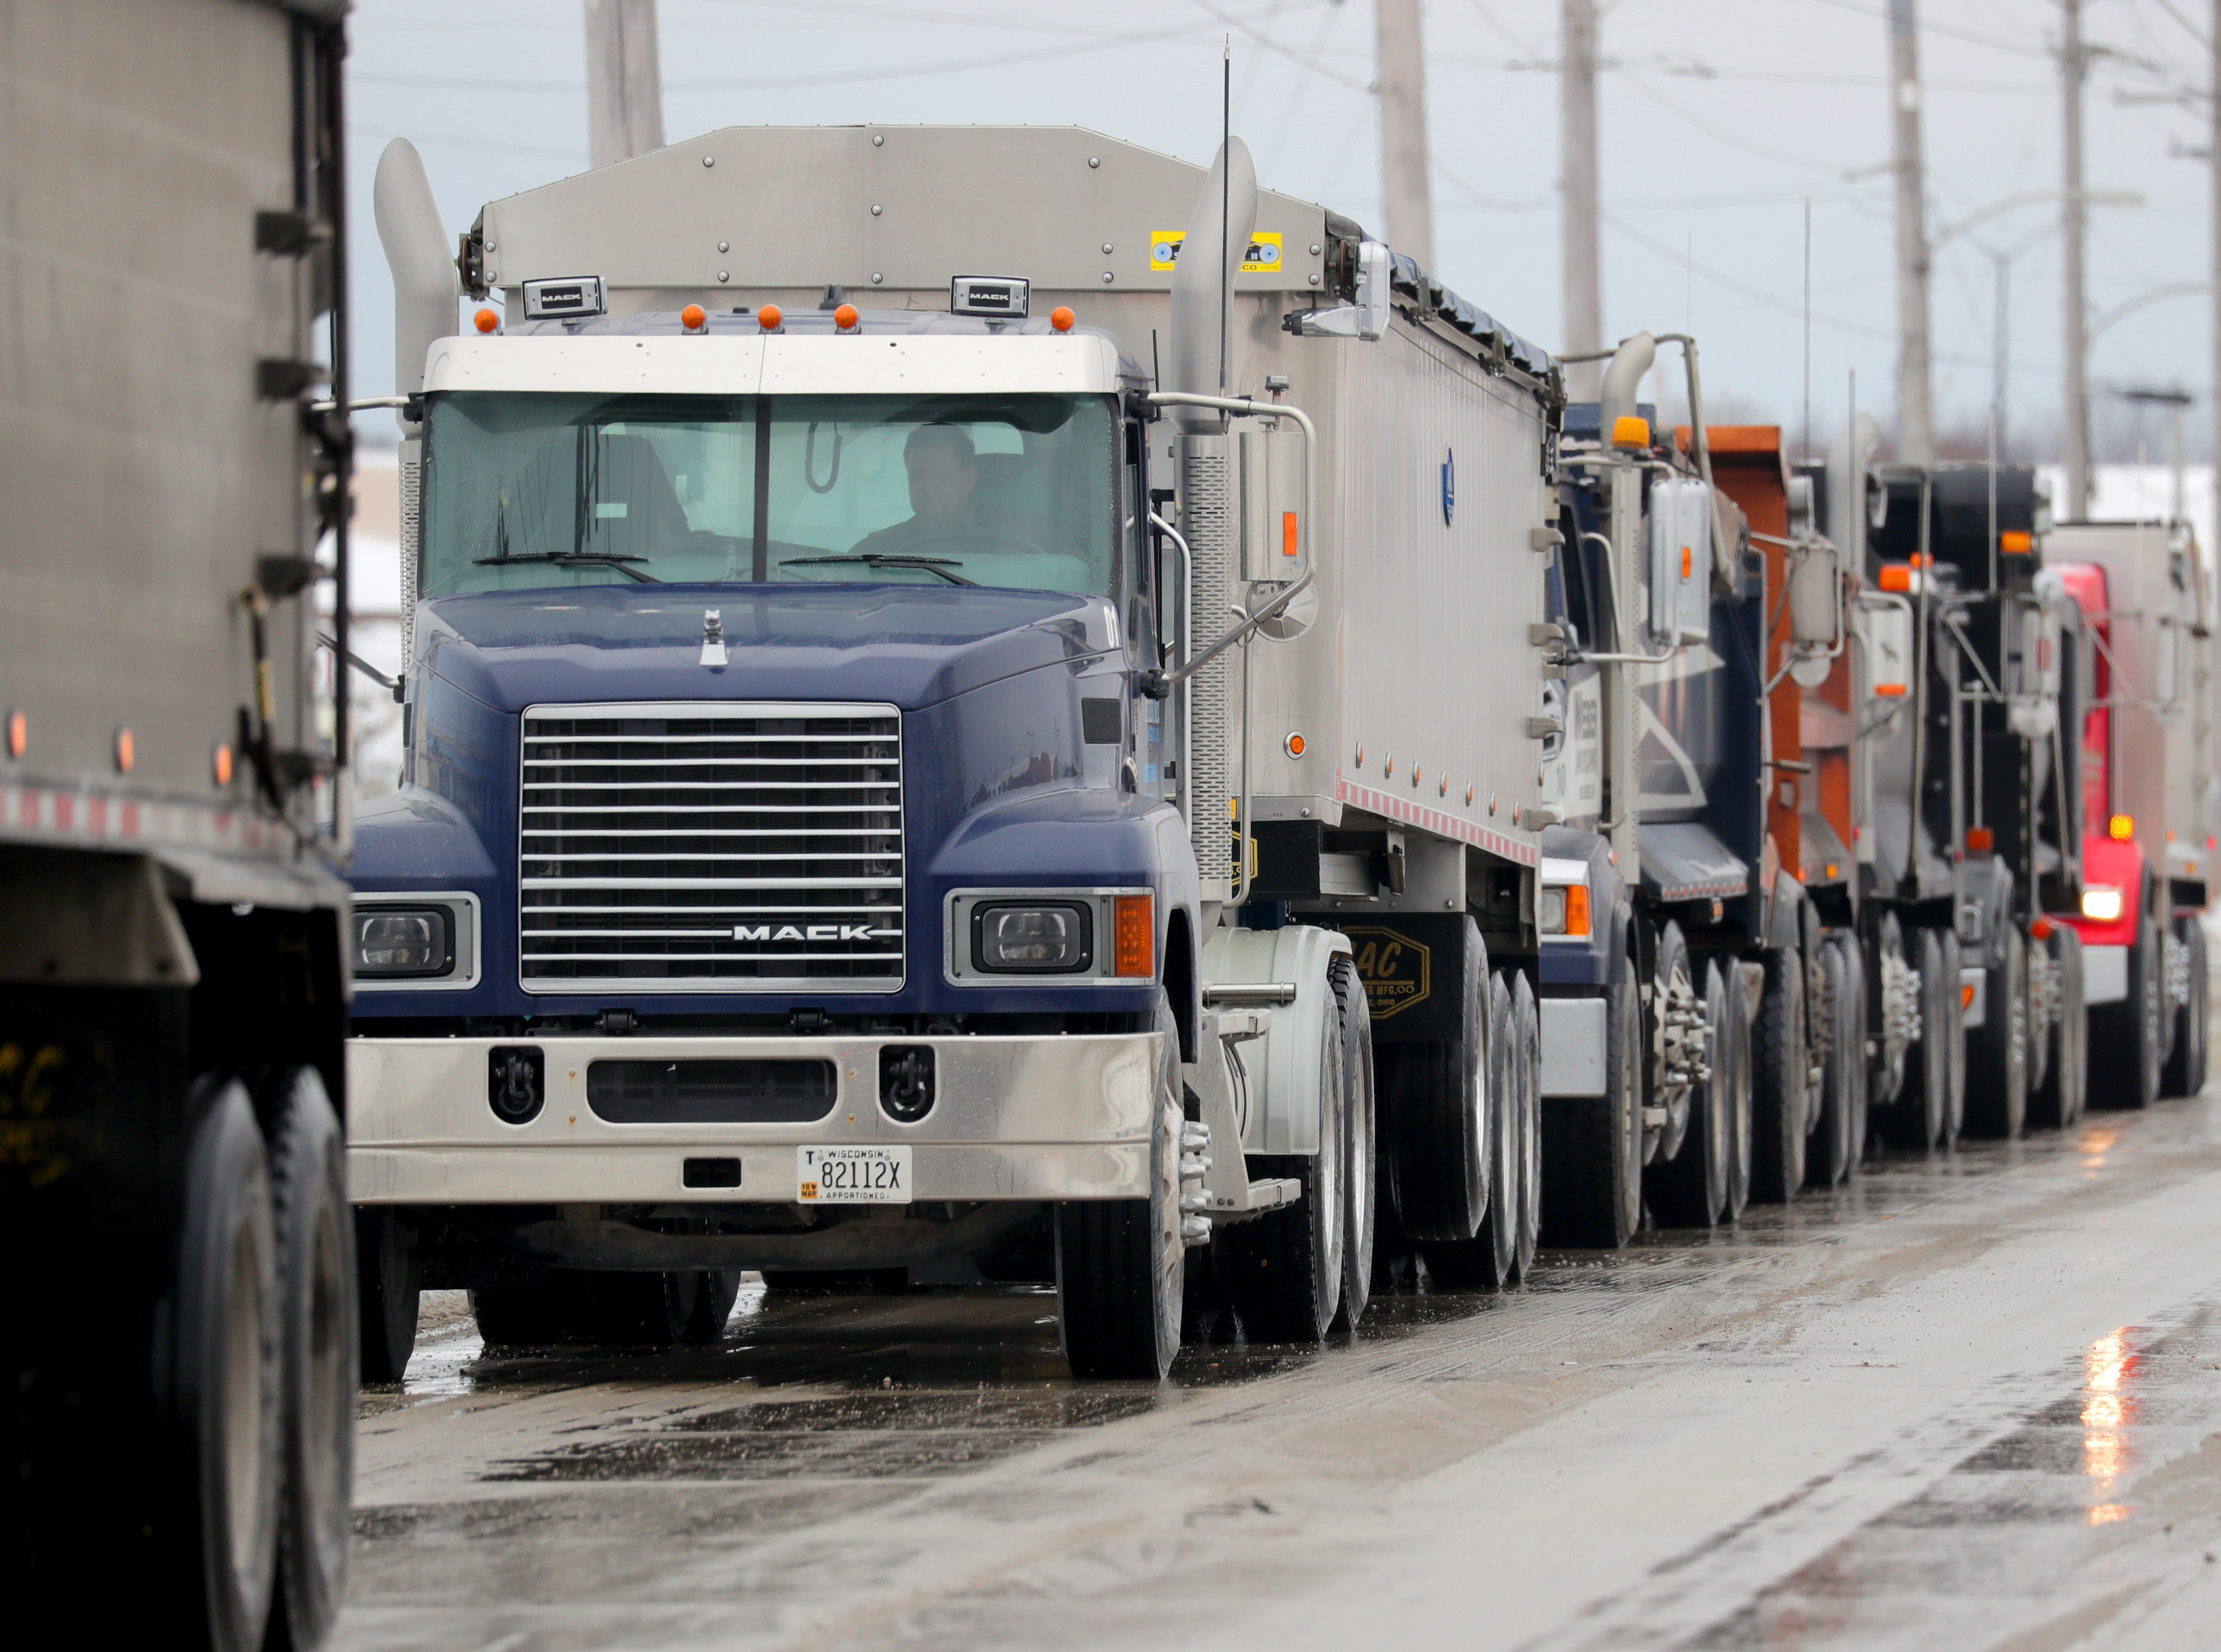 A row of truck line up to get salt at the Port of Milwaukee in Milwaukee on Monday, Feb. 11, 2019 as preparations are underway for snow removal and road treatment due to the upcoming snow in the forecast. The National Weather Service has issued a winter storm warning for central, northern and northeastern Wisconsin from 9 p.m. Monday until 12 a.m. Wednesday. Photo by Mike De Sisti / Milwaukee Journal Sentinel